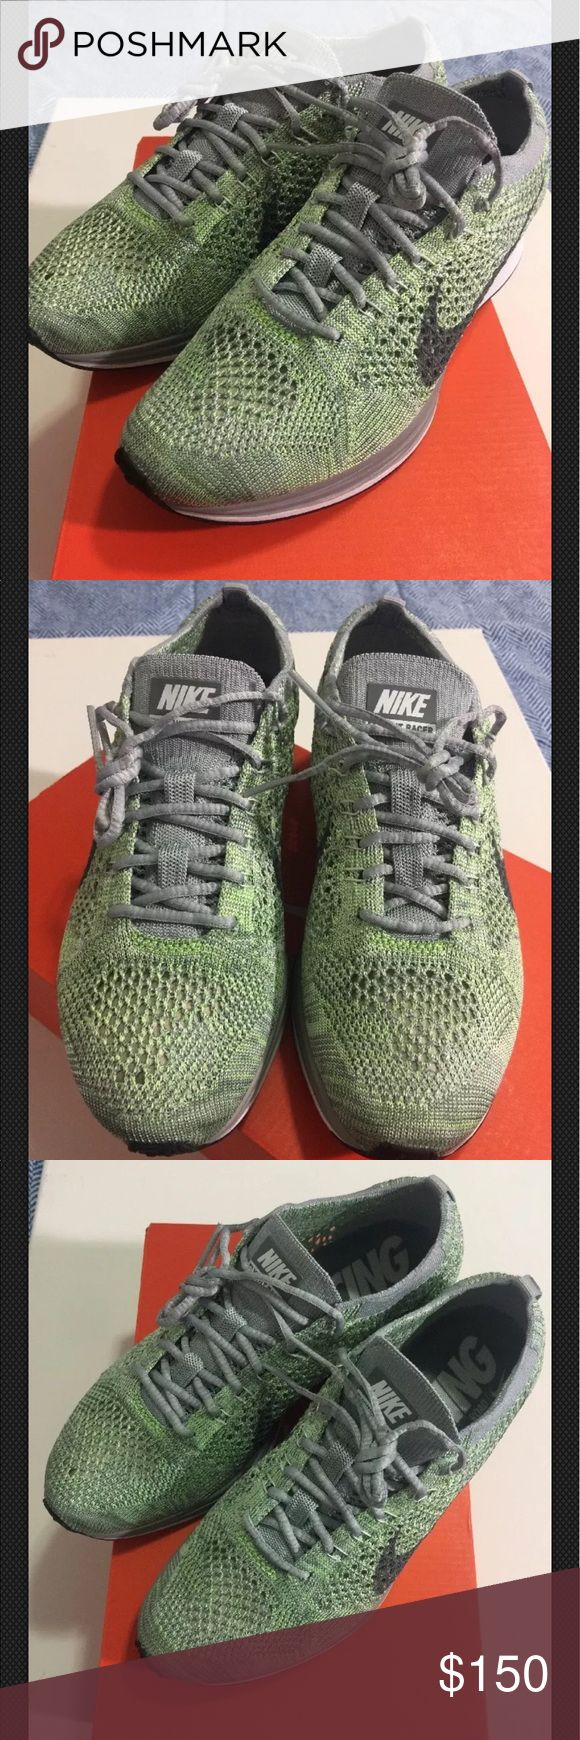 Nike Flyknit Racer Macaron Pistachio Brand New/ Never Used. Nike Flyknit Racer Macaron Pistachio. Size: women's 6.5/ men 5.0. Box included. No trades. Nike Shoes Athletic Shoes